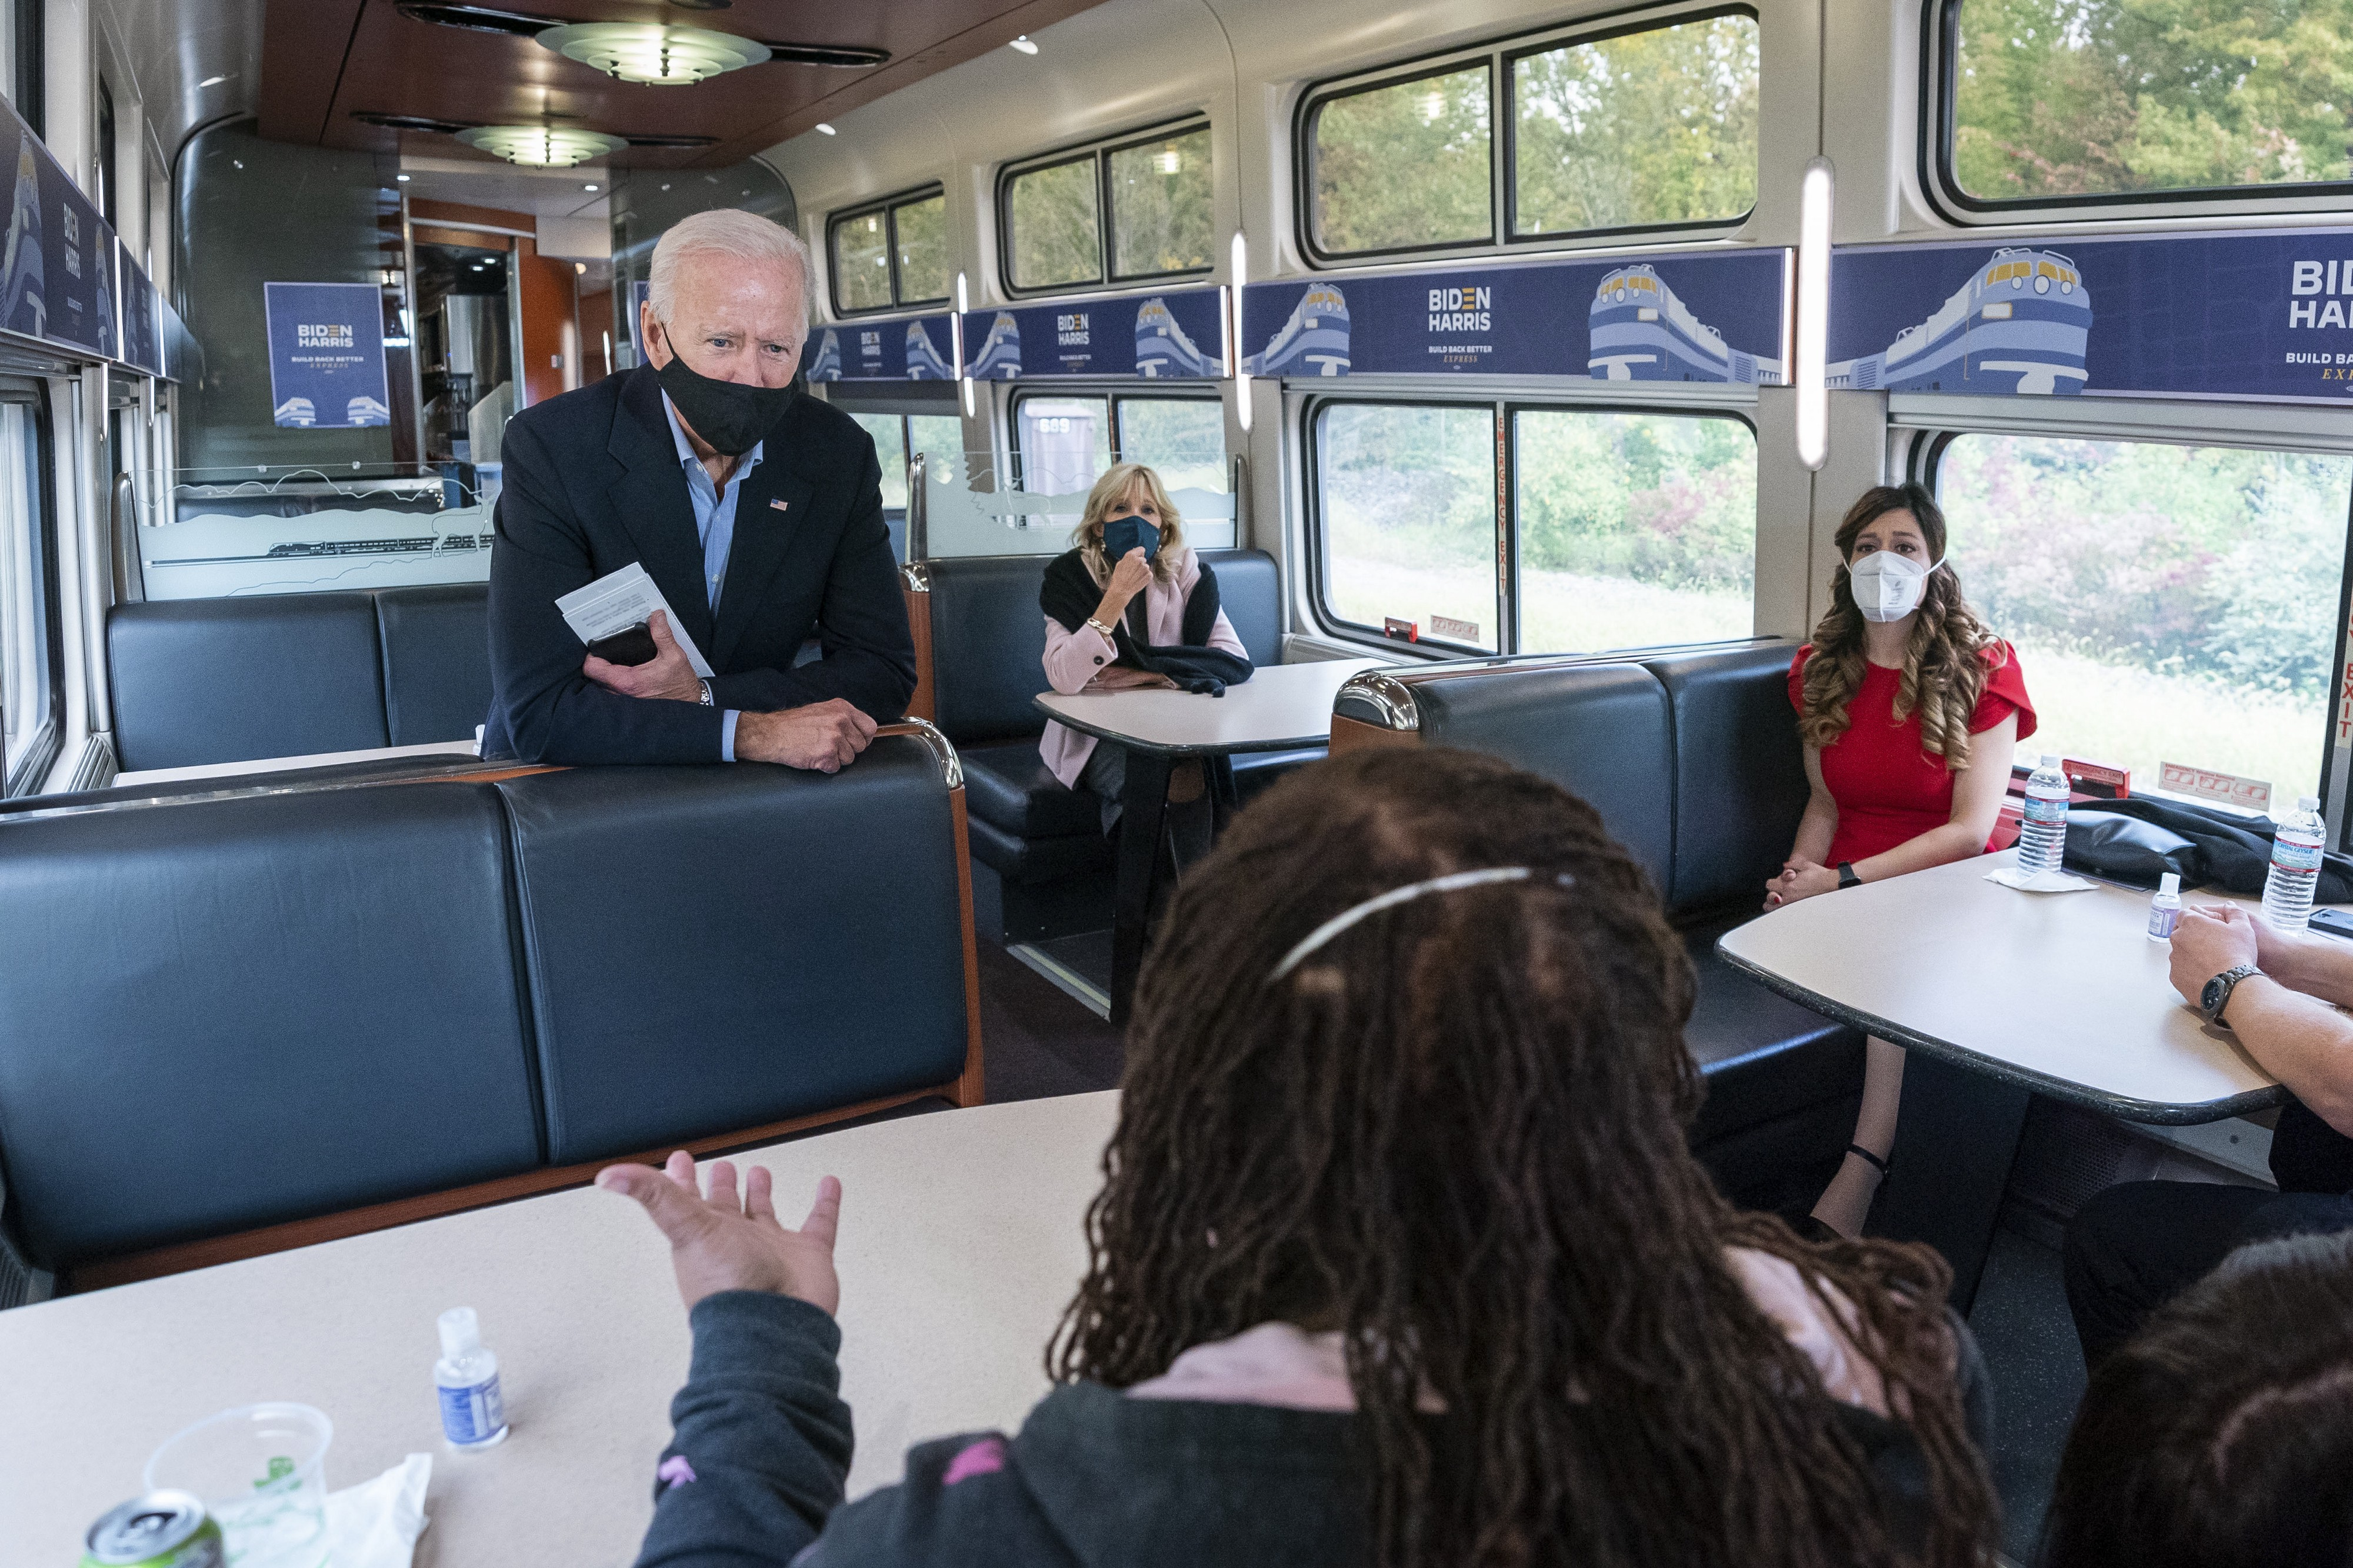 Joe Biden talks to campaign staffers on an Amtrak train in Cleveland, OH during his Build Back Better Express Tour.